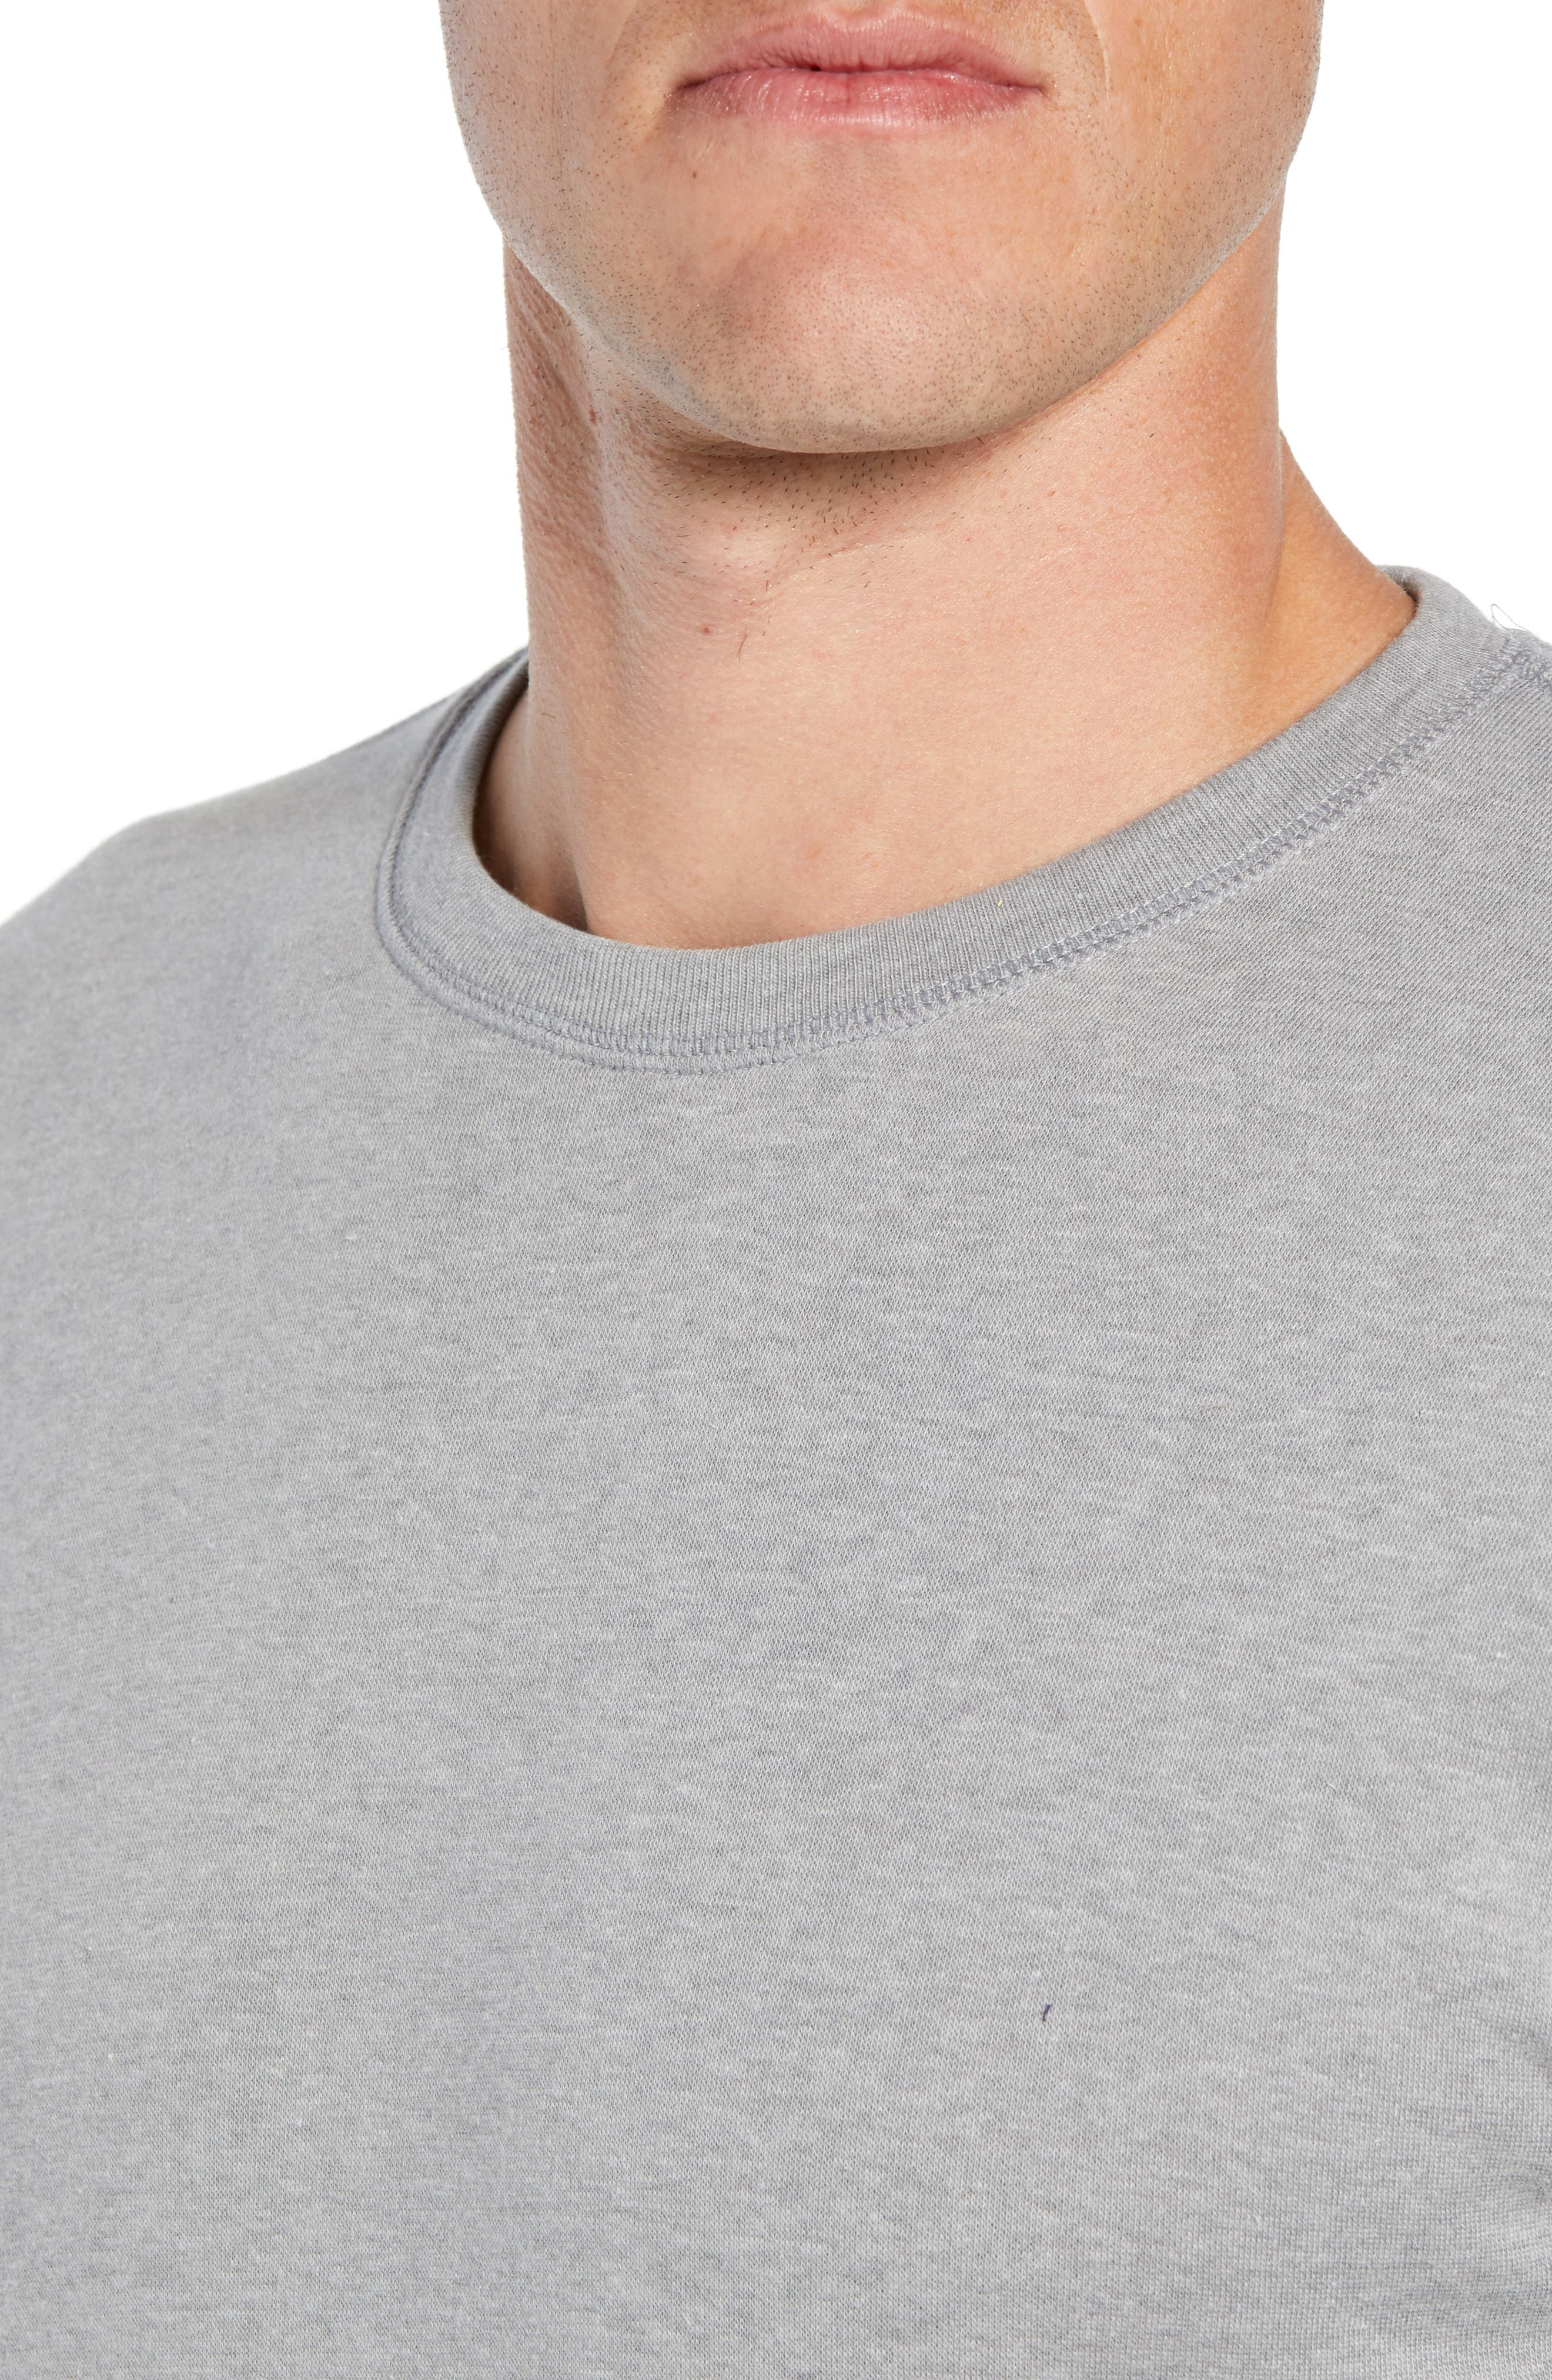 Brushed Jersey Cotton Blend Crewneck Sweatshirt,                             Alternate thumbnail 4, color,                             ANDOVER HEATHER GREY